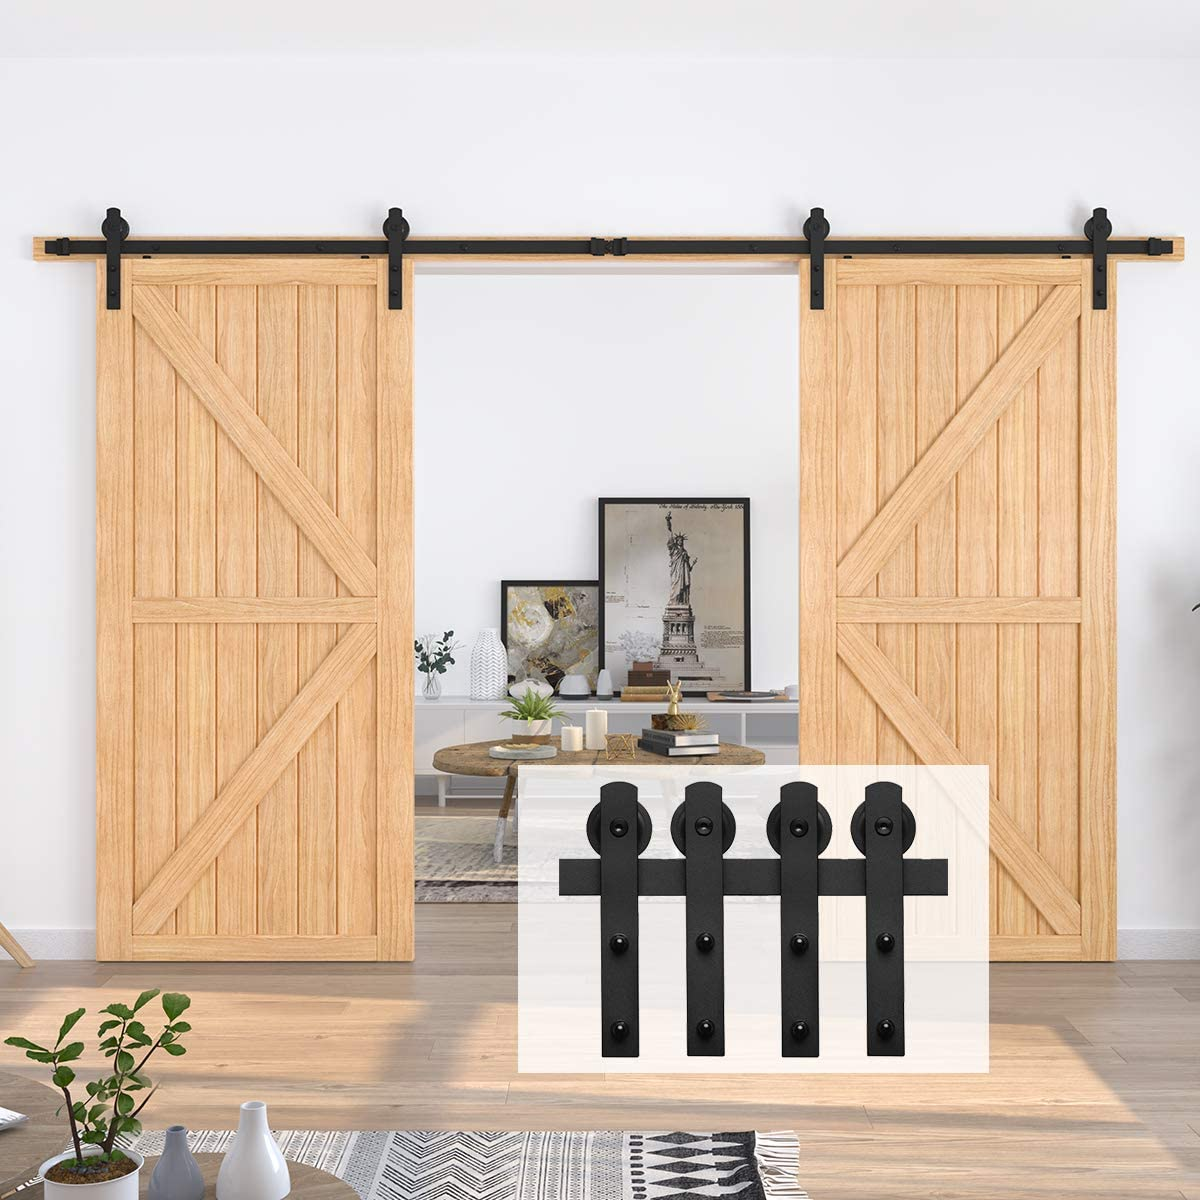 Double Door-Smoothly and Quietly HomLux 6.6ft Heavy Duty Sturdy Sliding Barn Door Hardware Kit Black I Shape Hanger Easy to Install and Reusable Fit 1 3//8-1 3//4 Thickness /& 20 Wide Door Panel